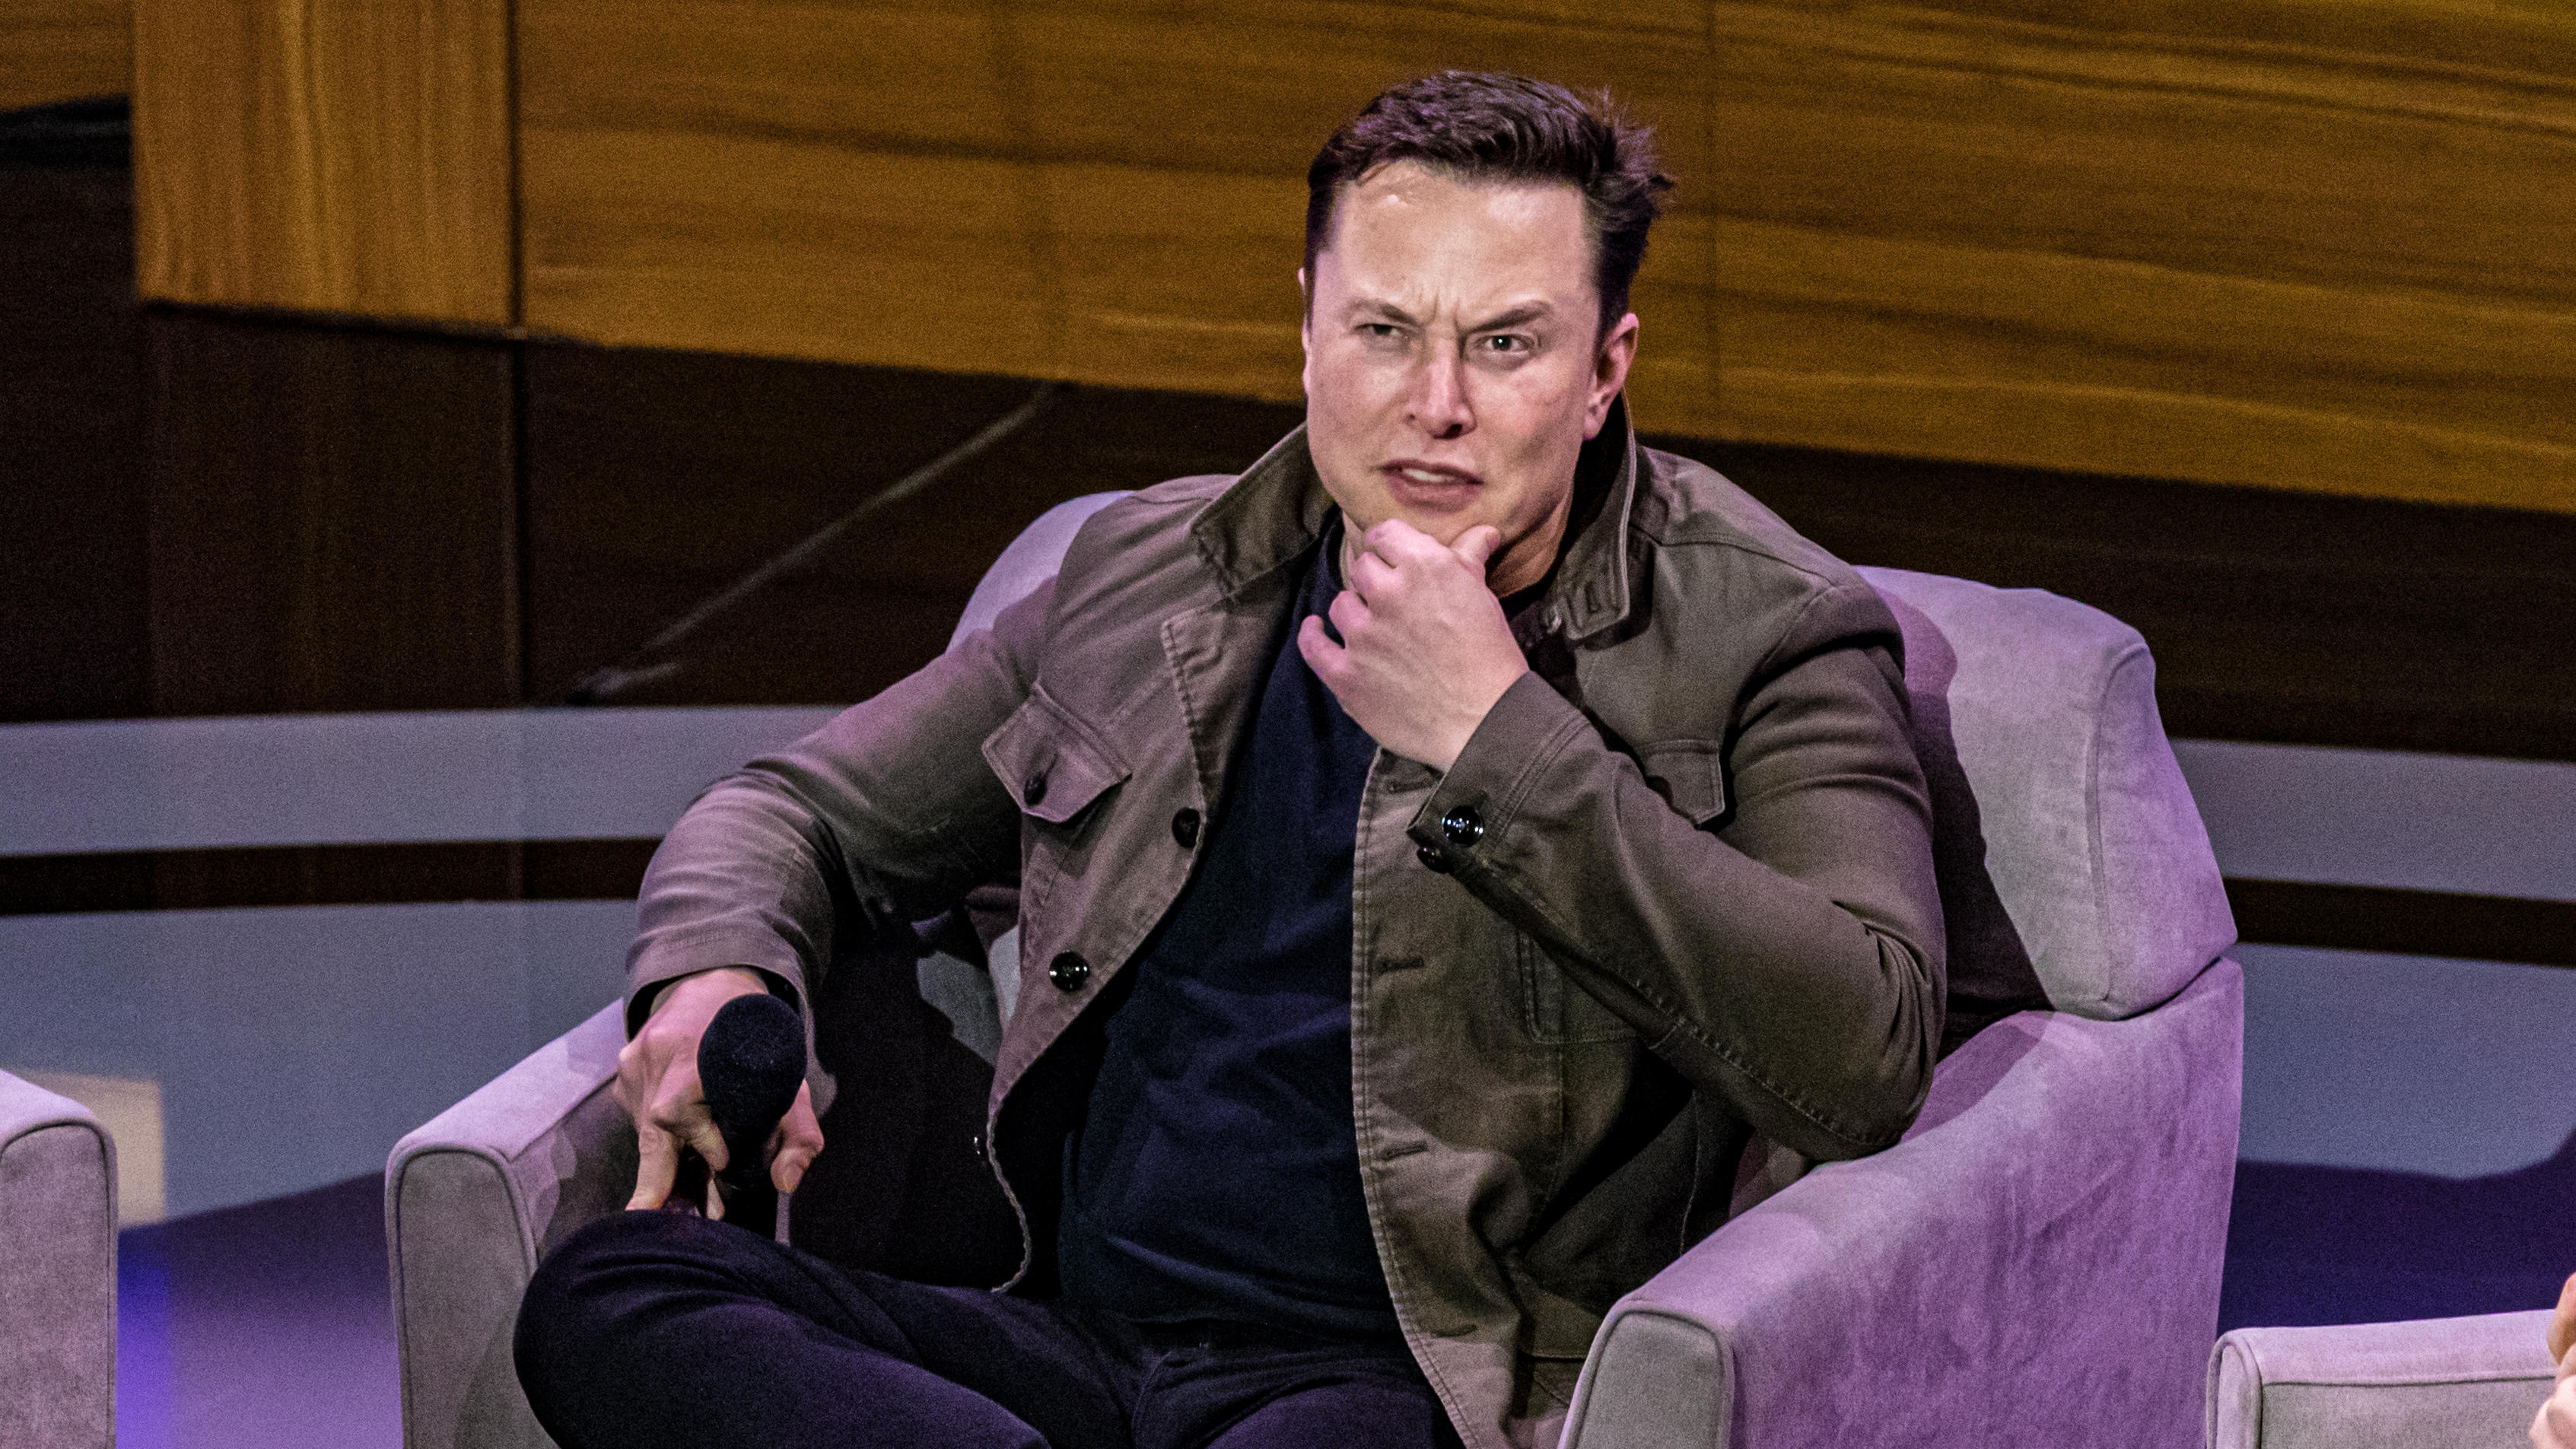 Elon Musk weighs in on Epic Games v. Apple suit